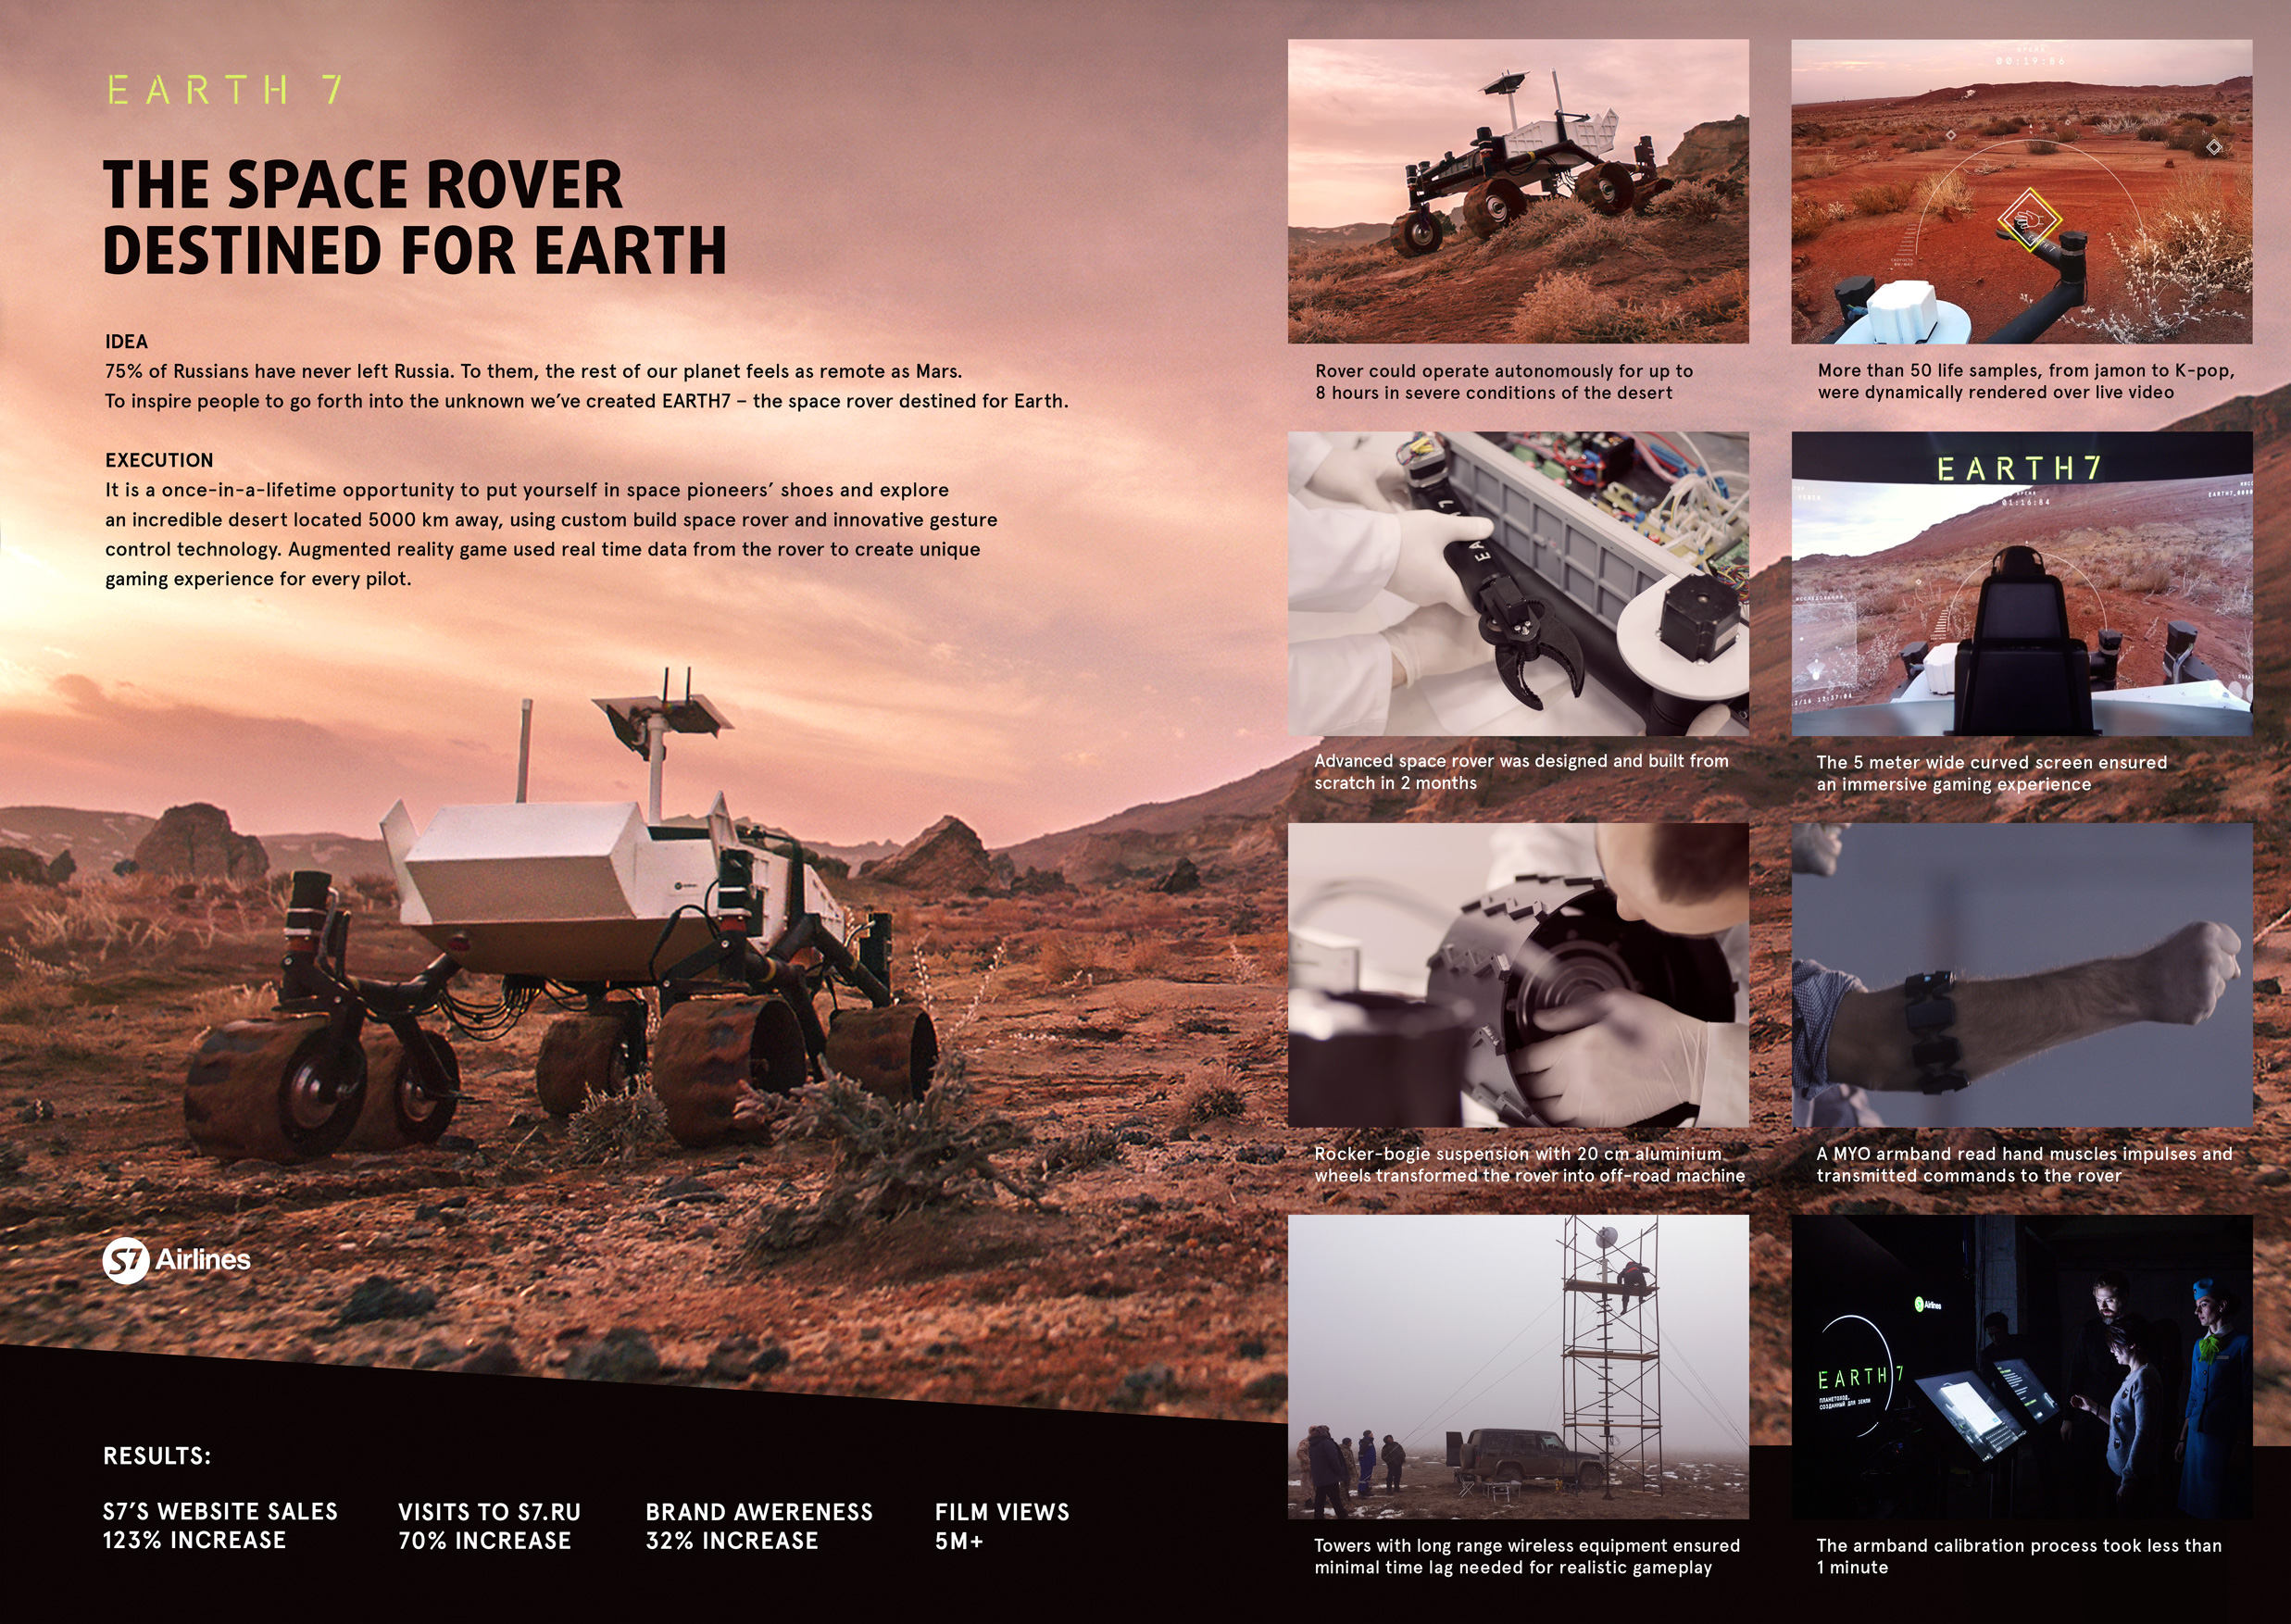 EARTH7. The space rover destined for Earth